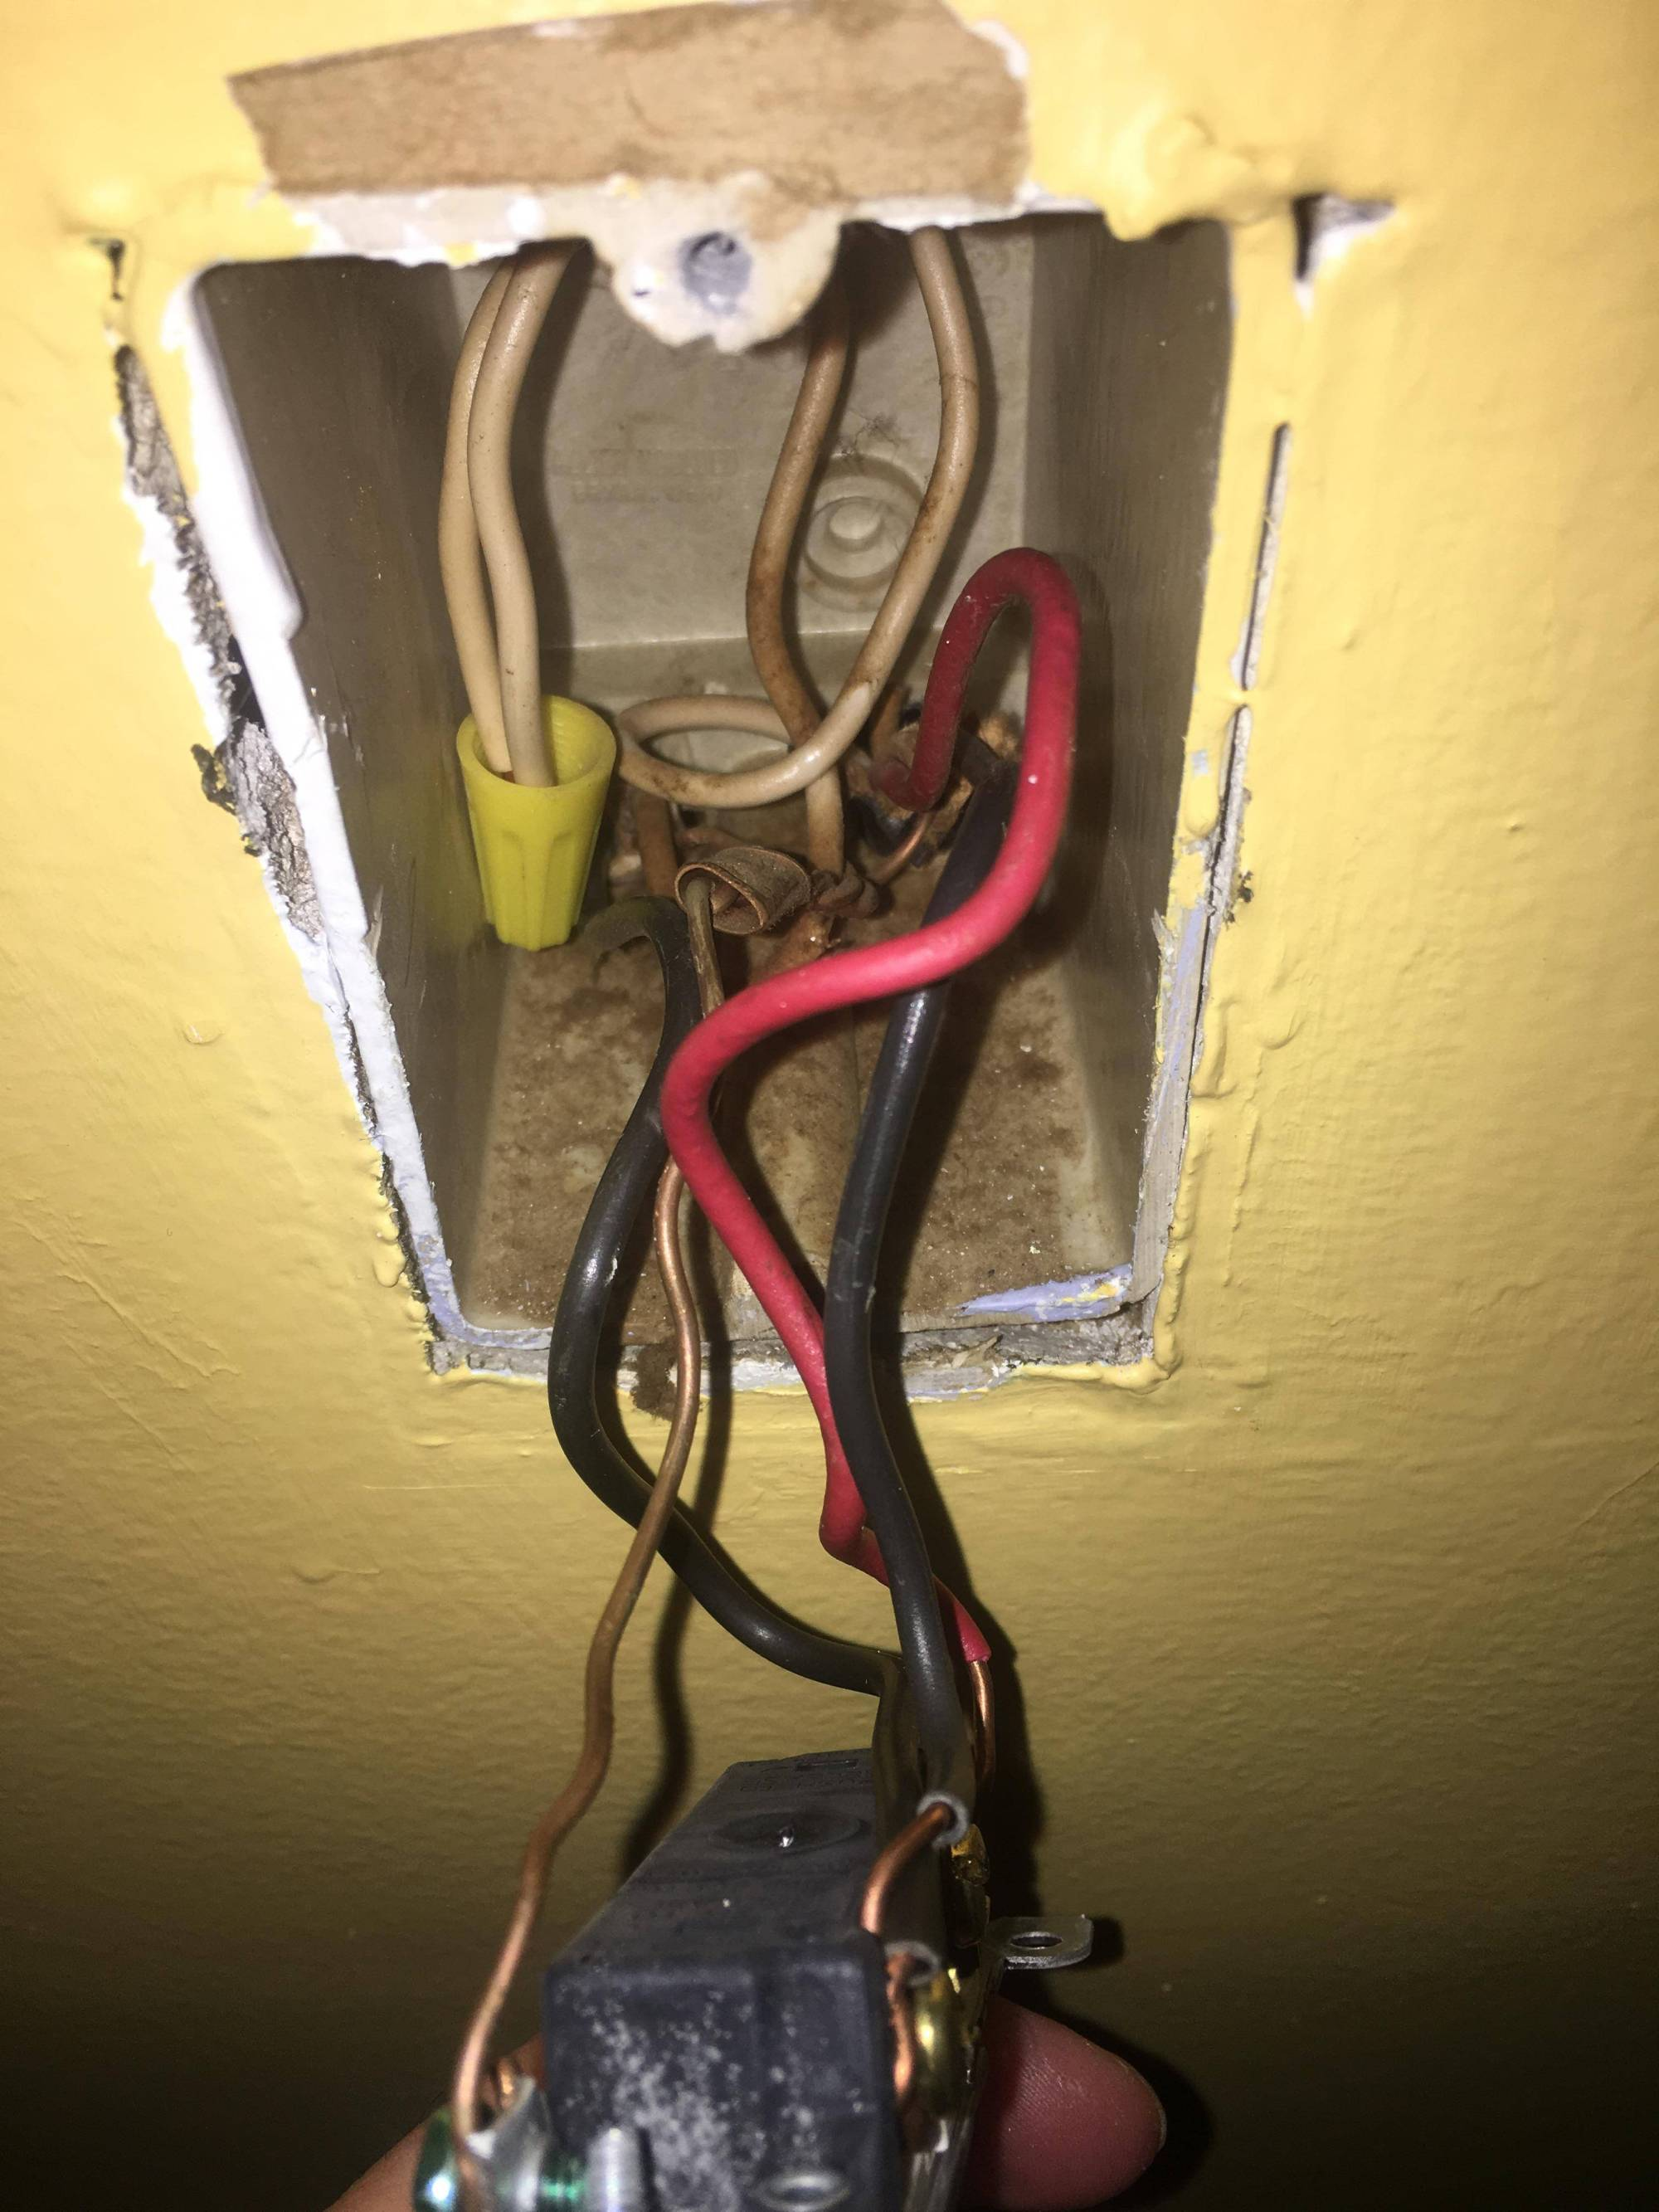 hight resolution of installing a ceiling light and rewiring switch and outlet